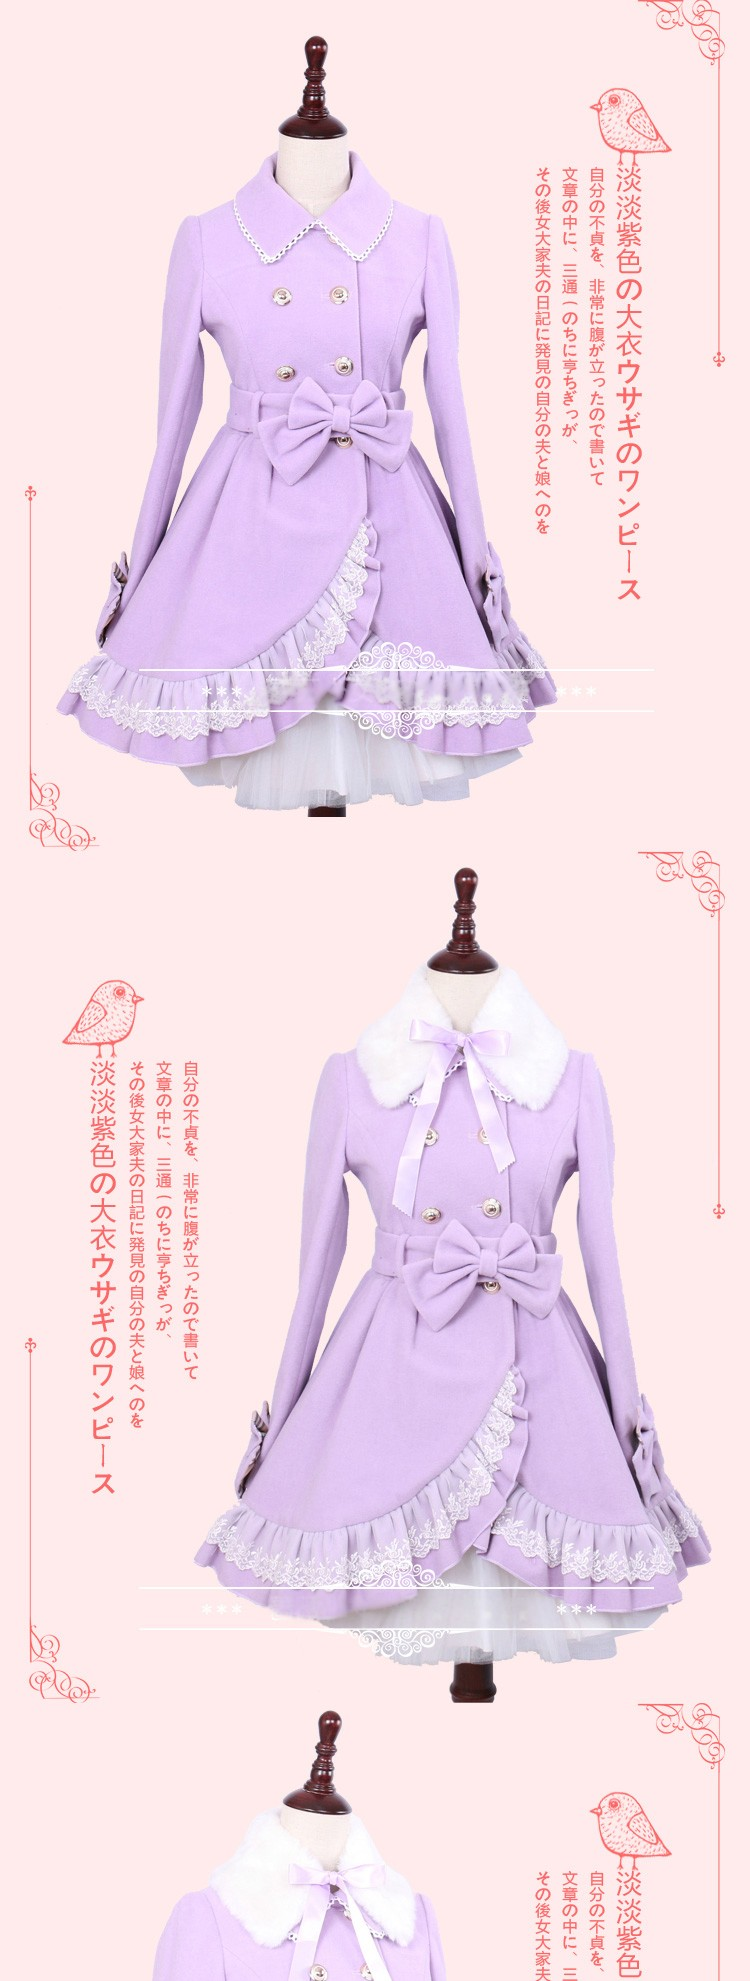 Sweet Lolita Dress Violet Lace Long-sleeves lady Winter Coat Warm Coat for women Cosplay Costumes XS-XL Custom-made